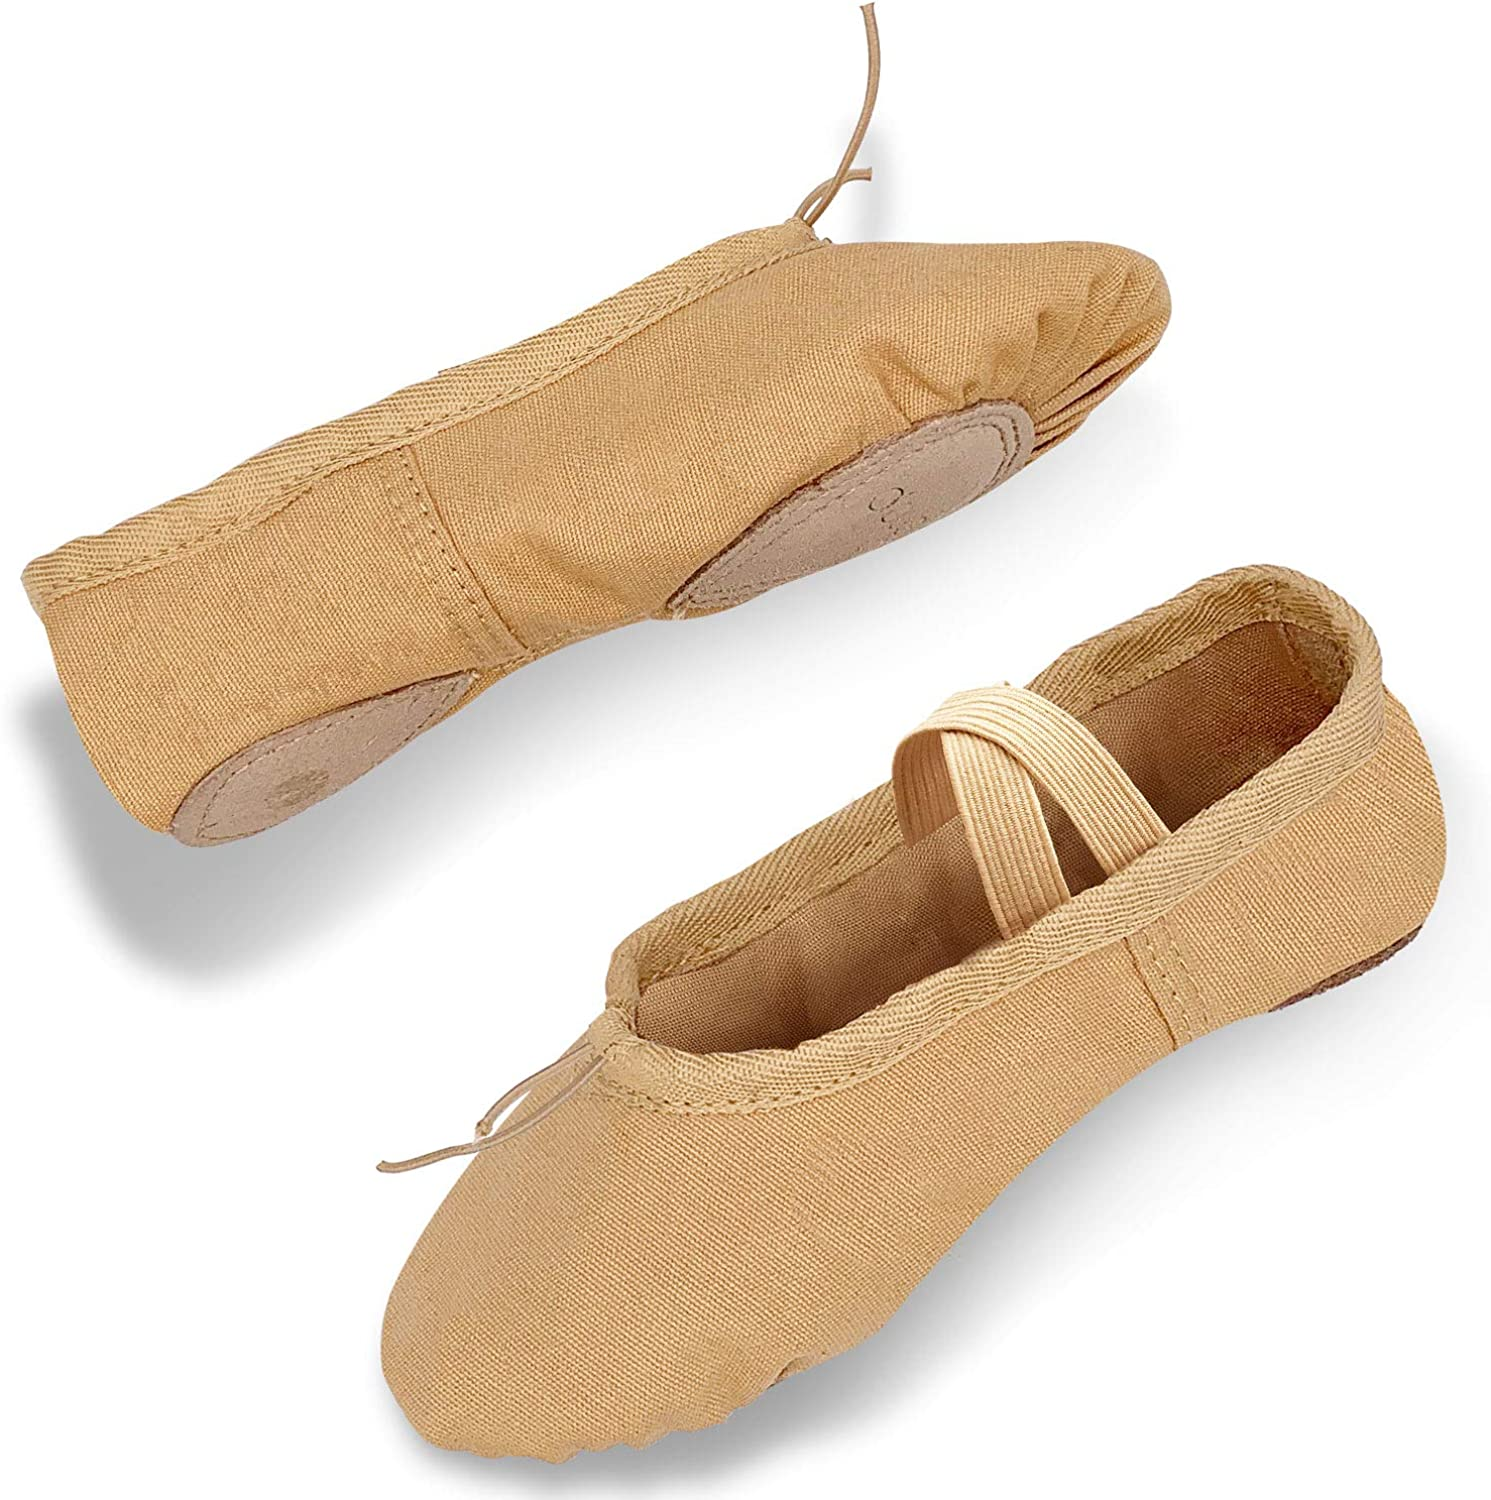 DIPUG Ballet Shoes for Girls Toddler Ballet Shoes Canvas Dance Ballet Slippers